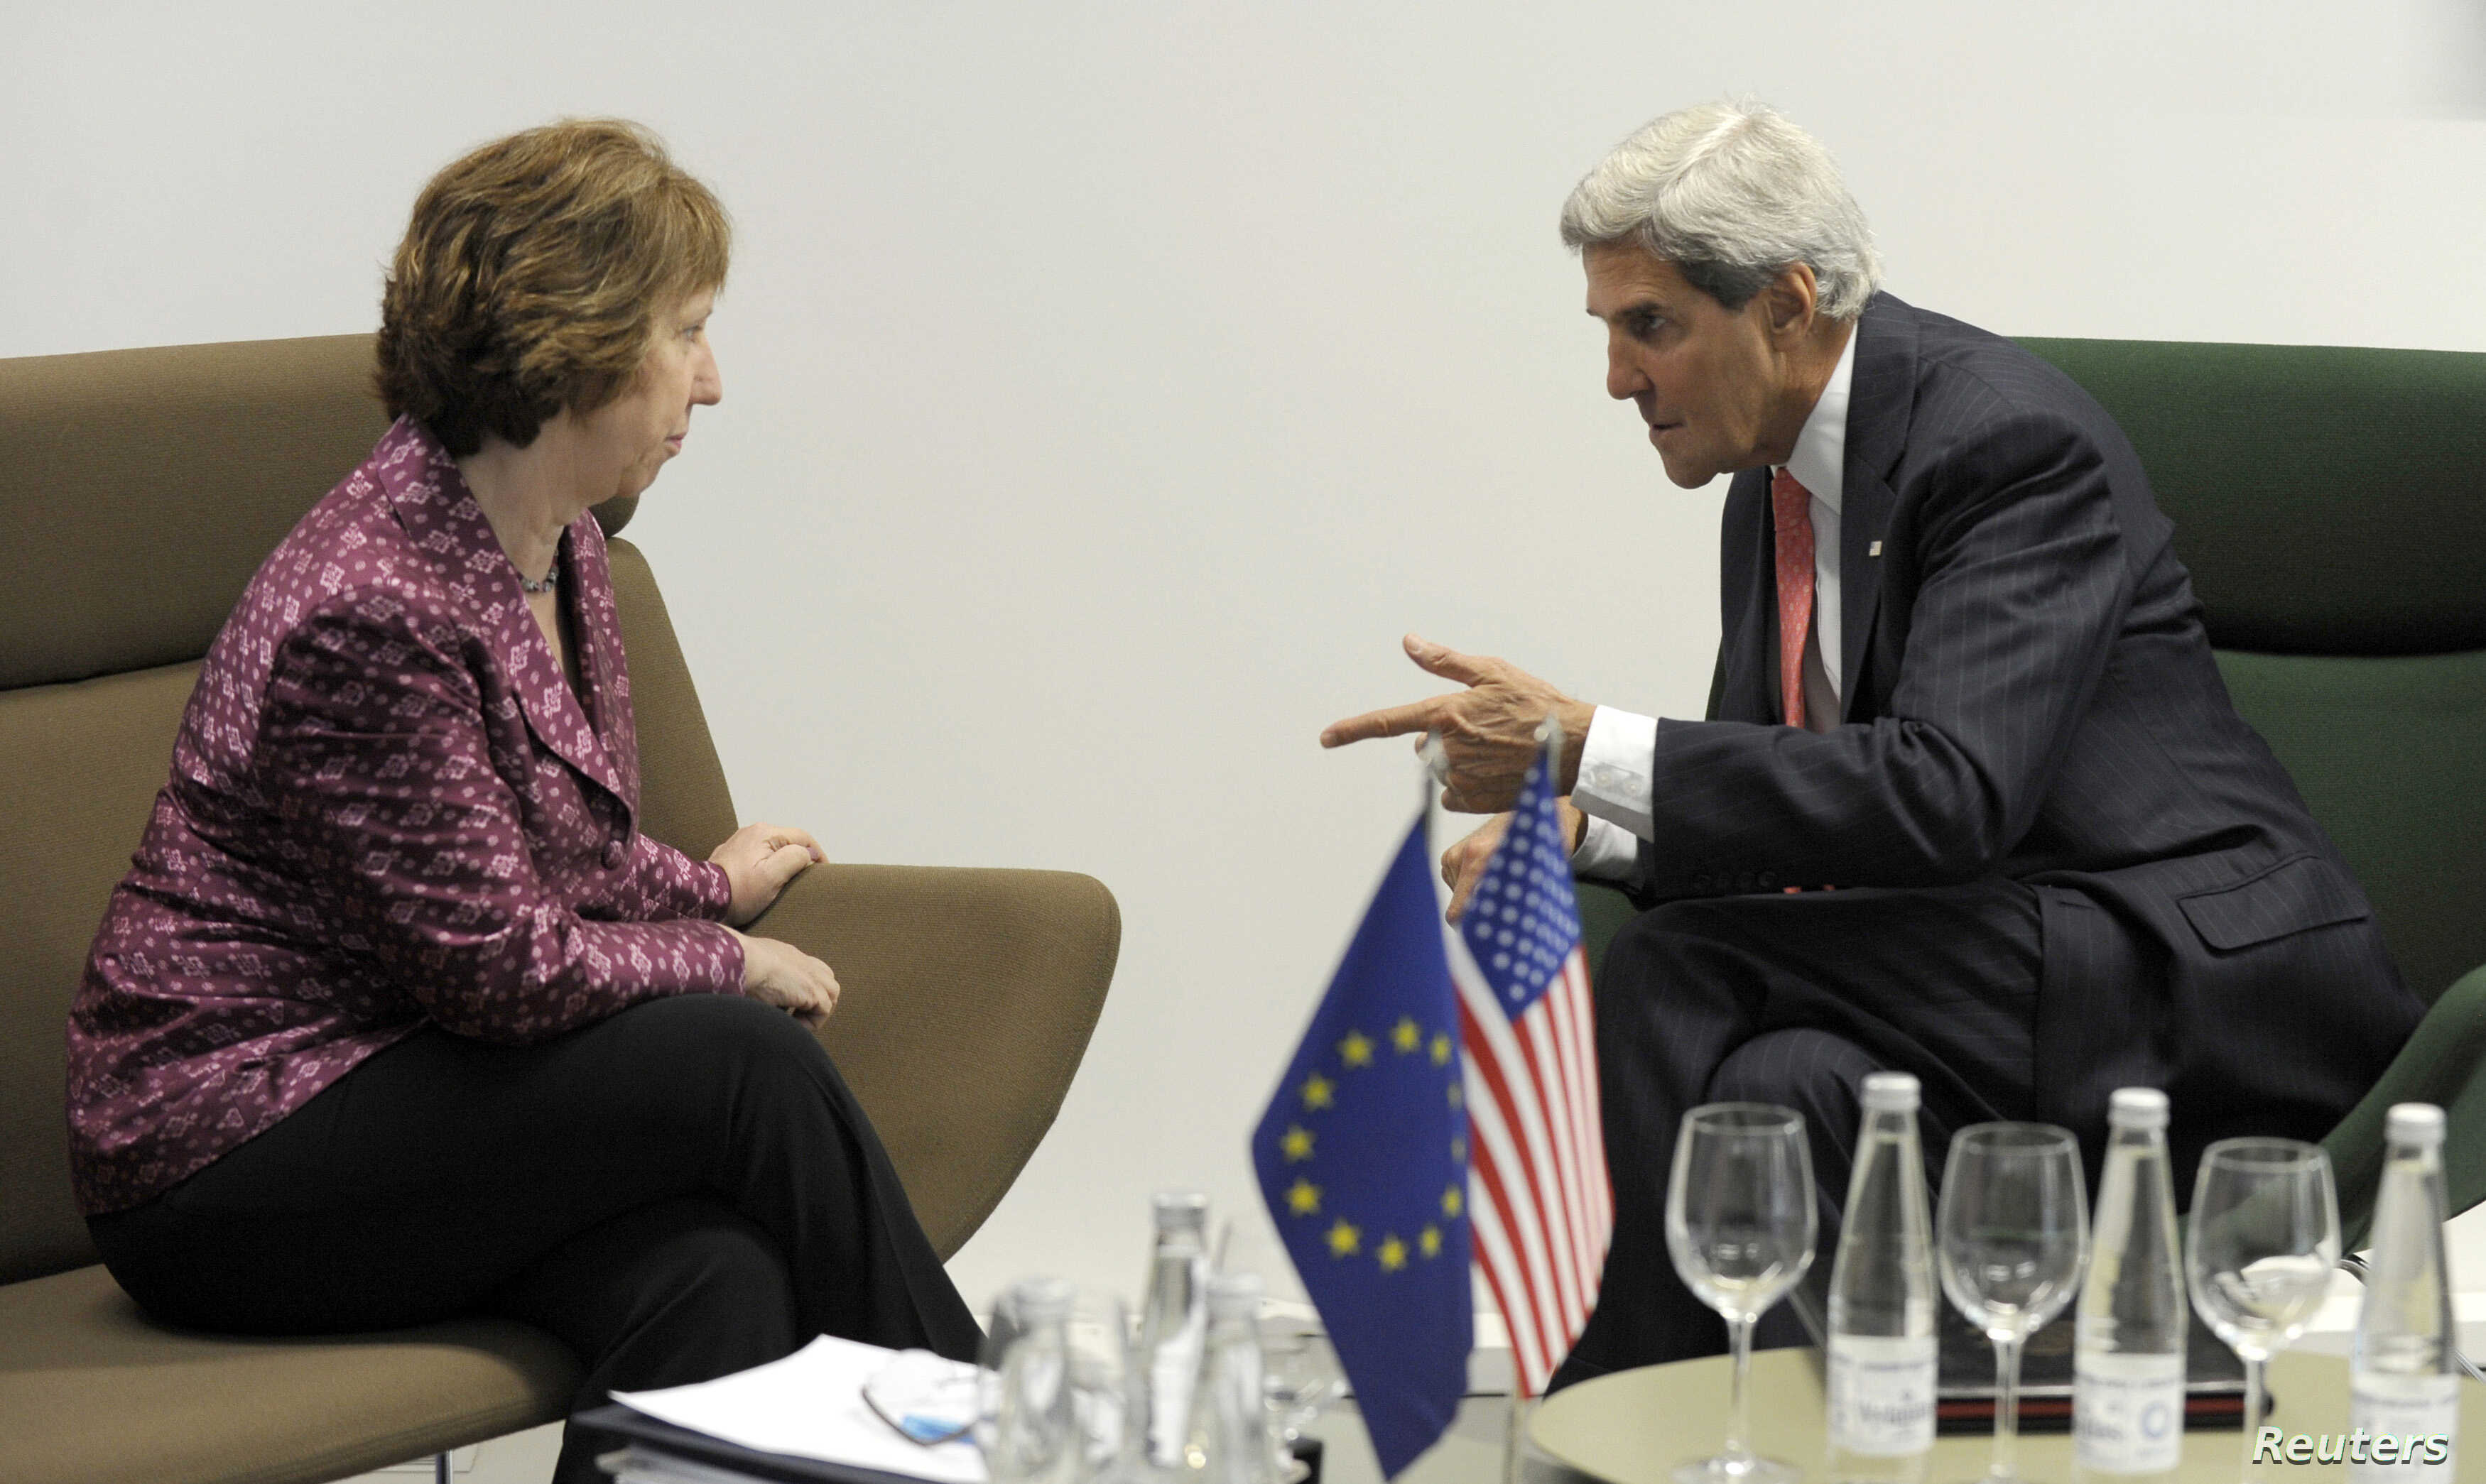 U.S. Secretary of State John Kerry (R) meets with European Union High Representative Catherine Ashton before a meeting of EU ministers of foreign affairs at the National Gallery of Art in Vilnius, Sept. 7, 2013.